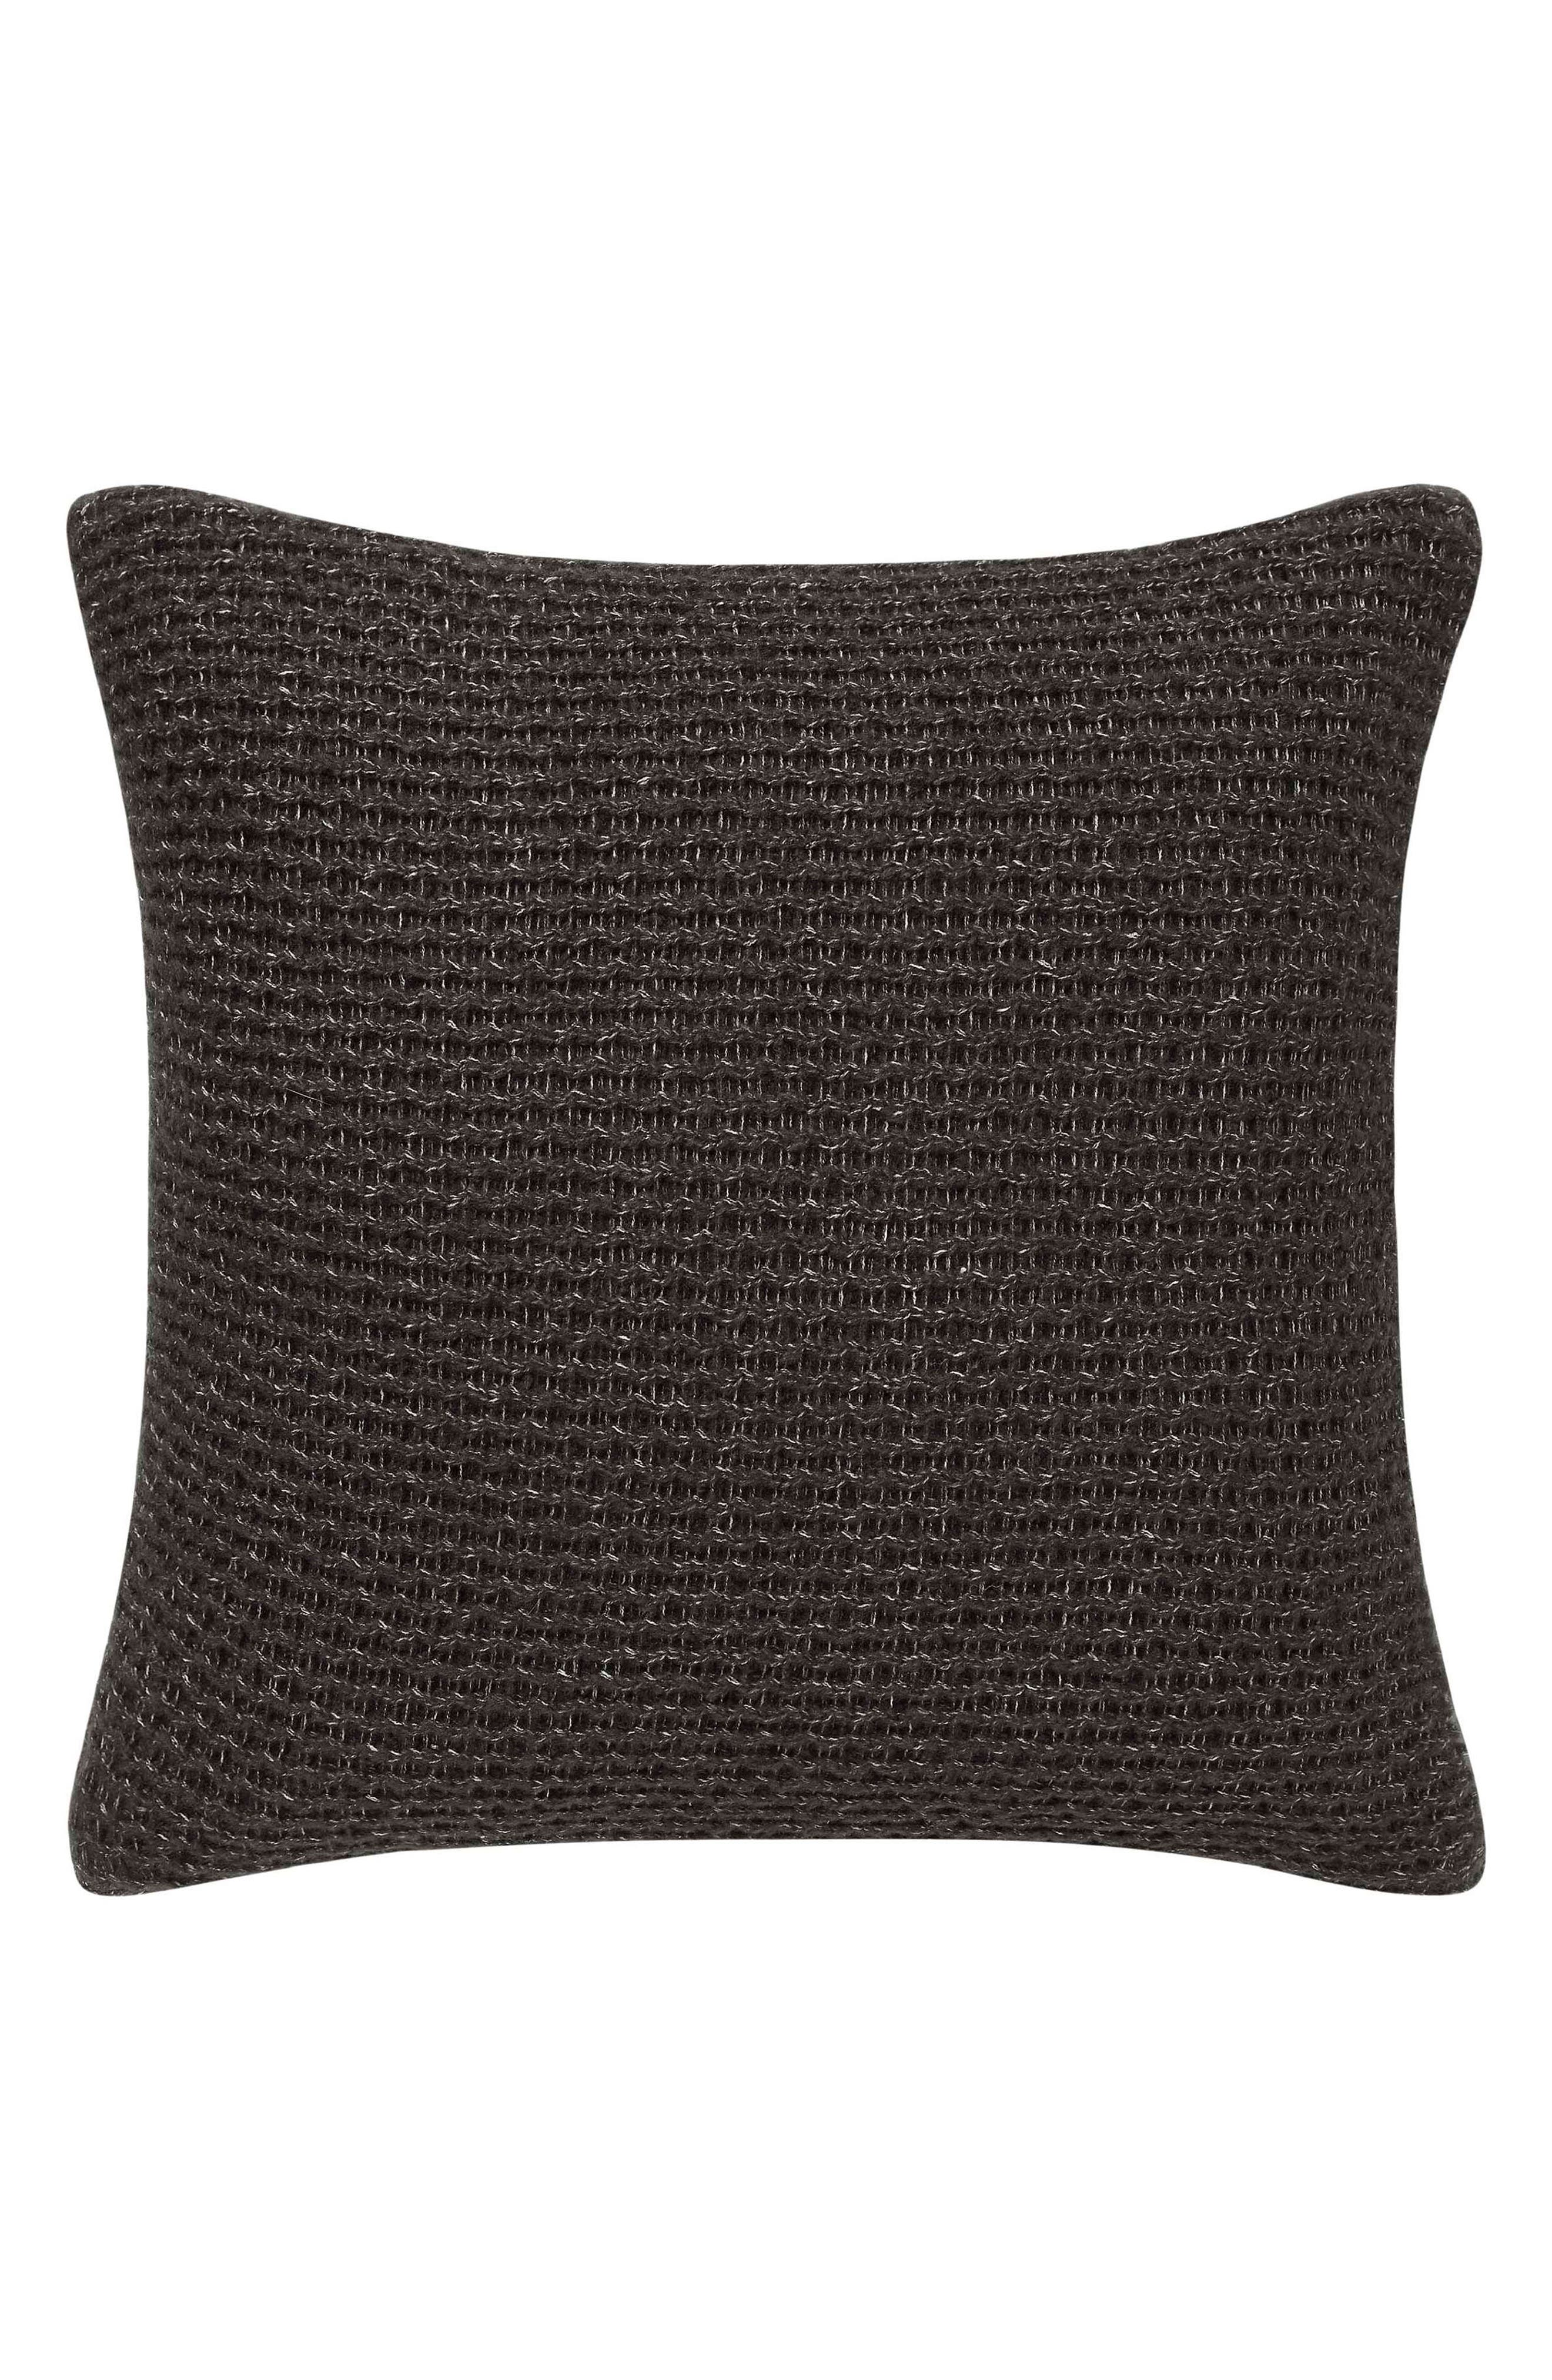 Marled Knit Accent Pillow,                             Main thumbnail 1, color,                             SOOT